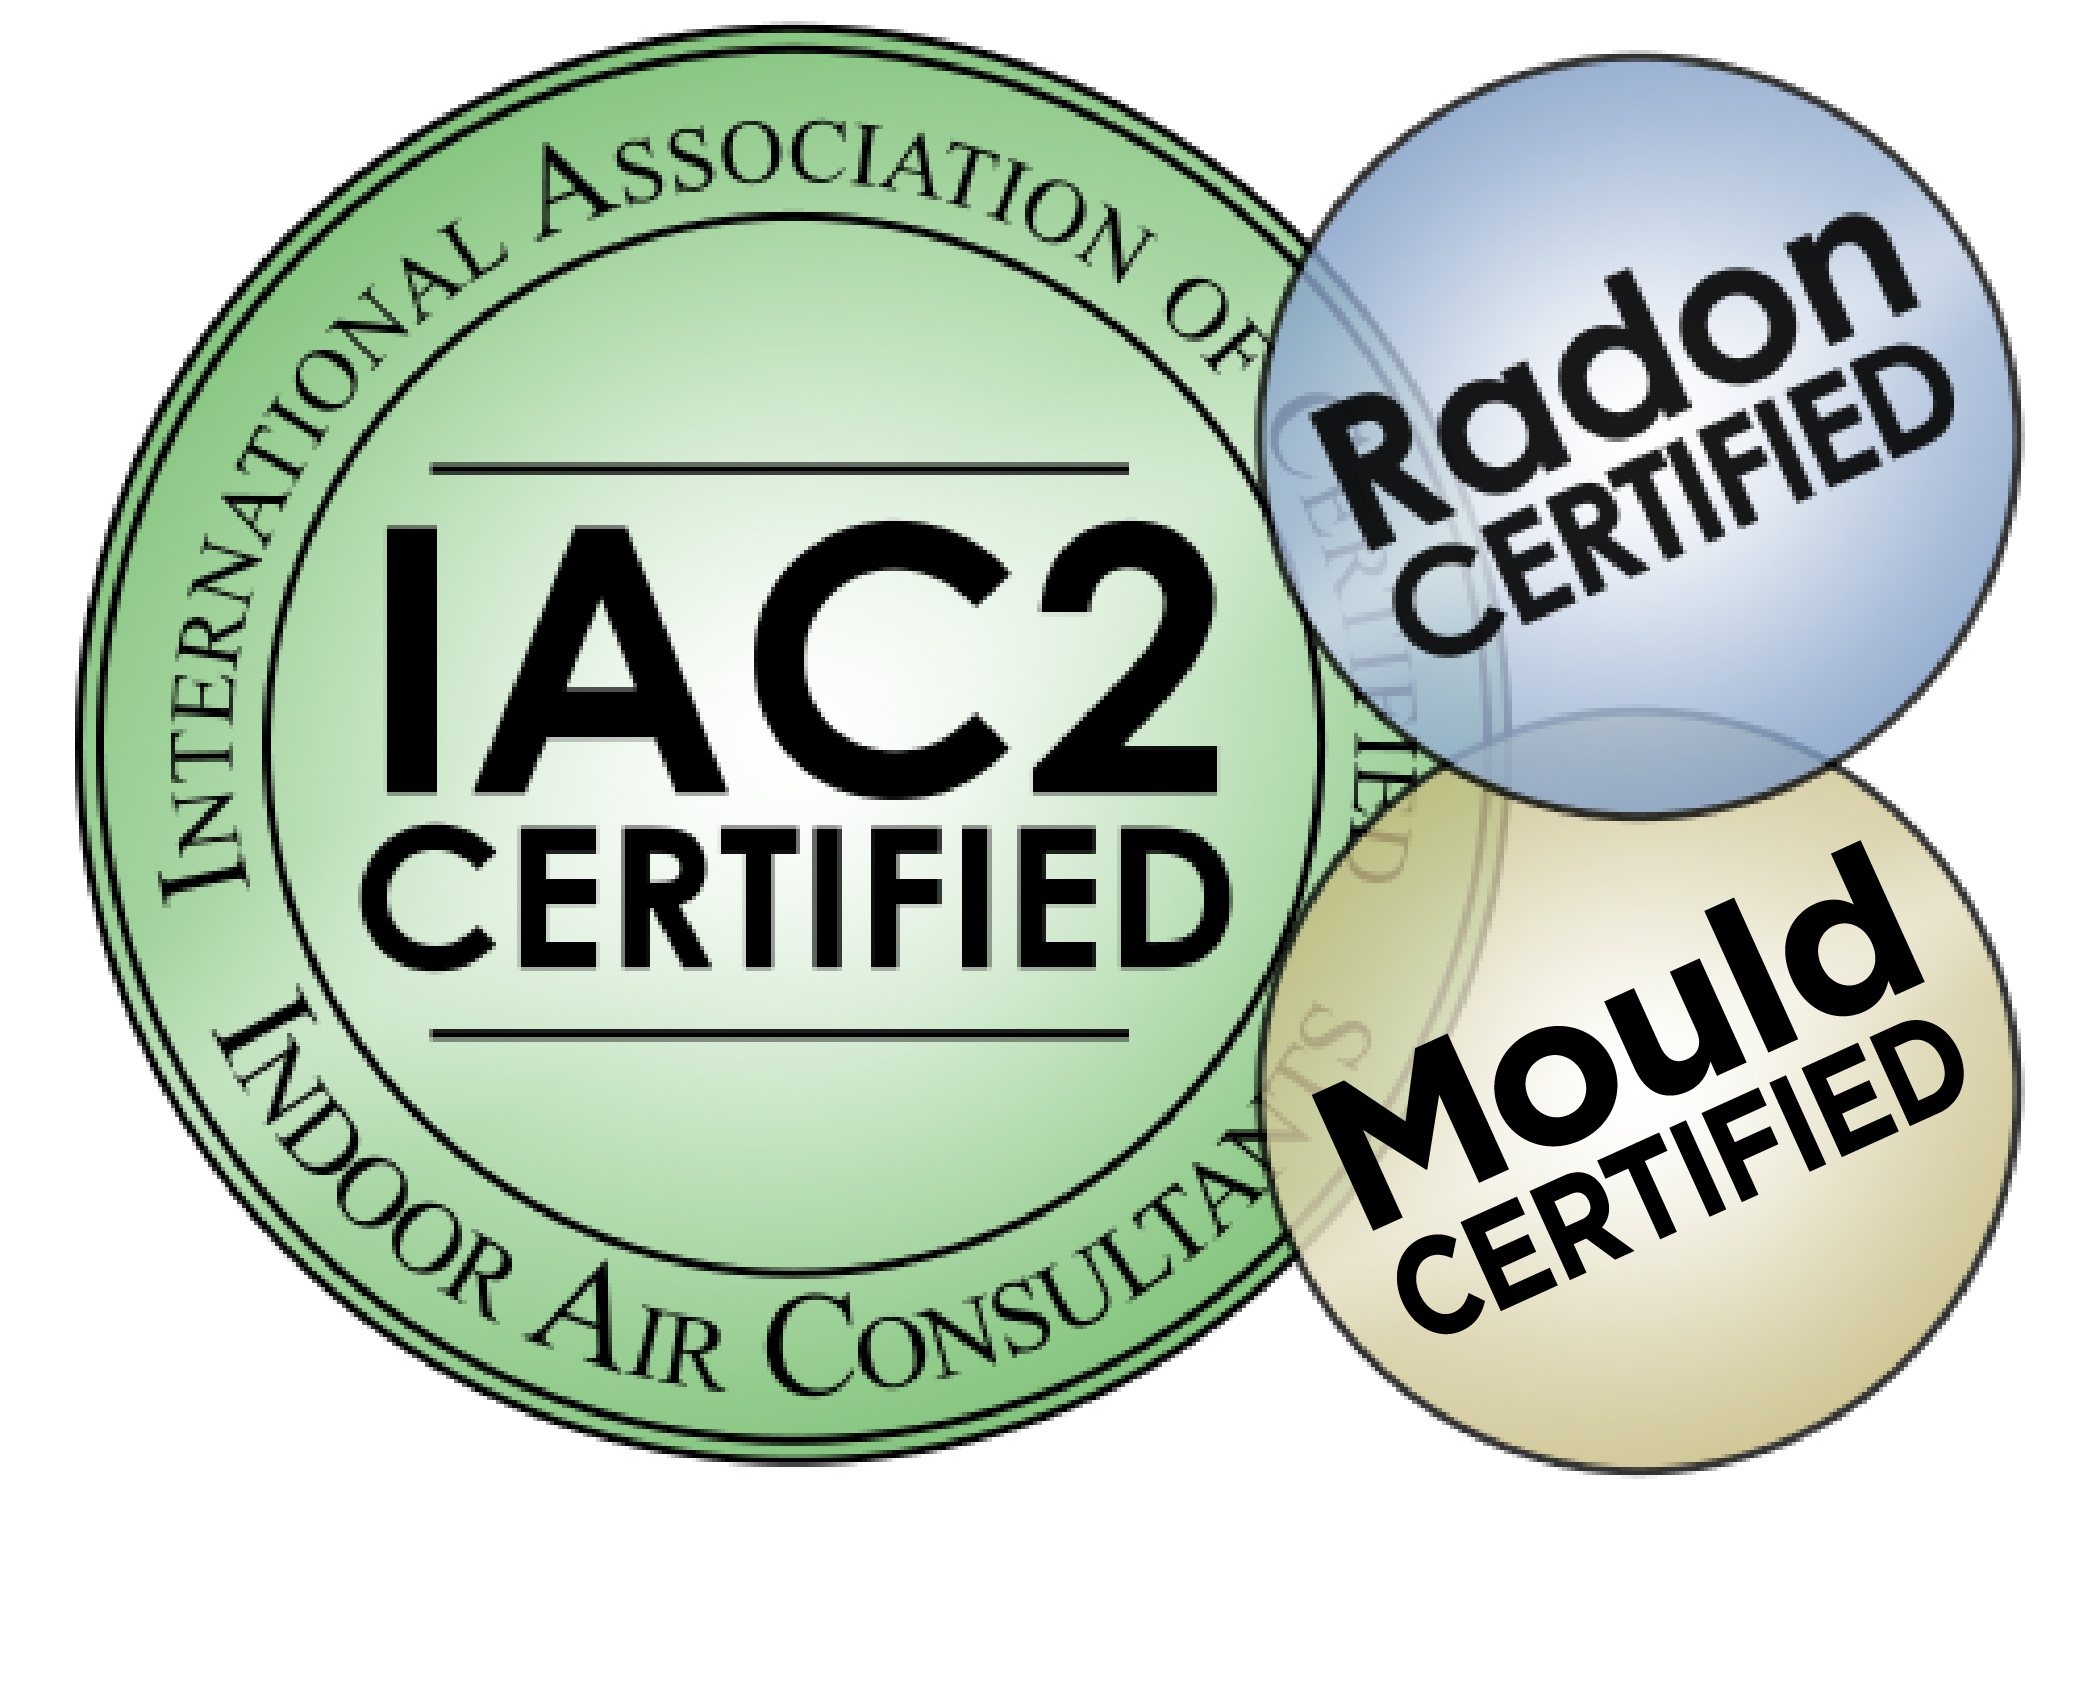 IAC2 Mould Radon Logo.jpg